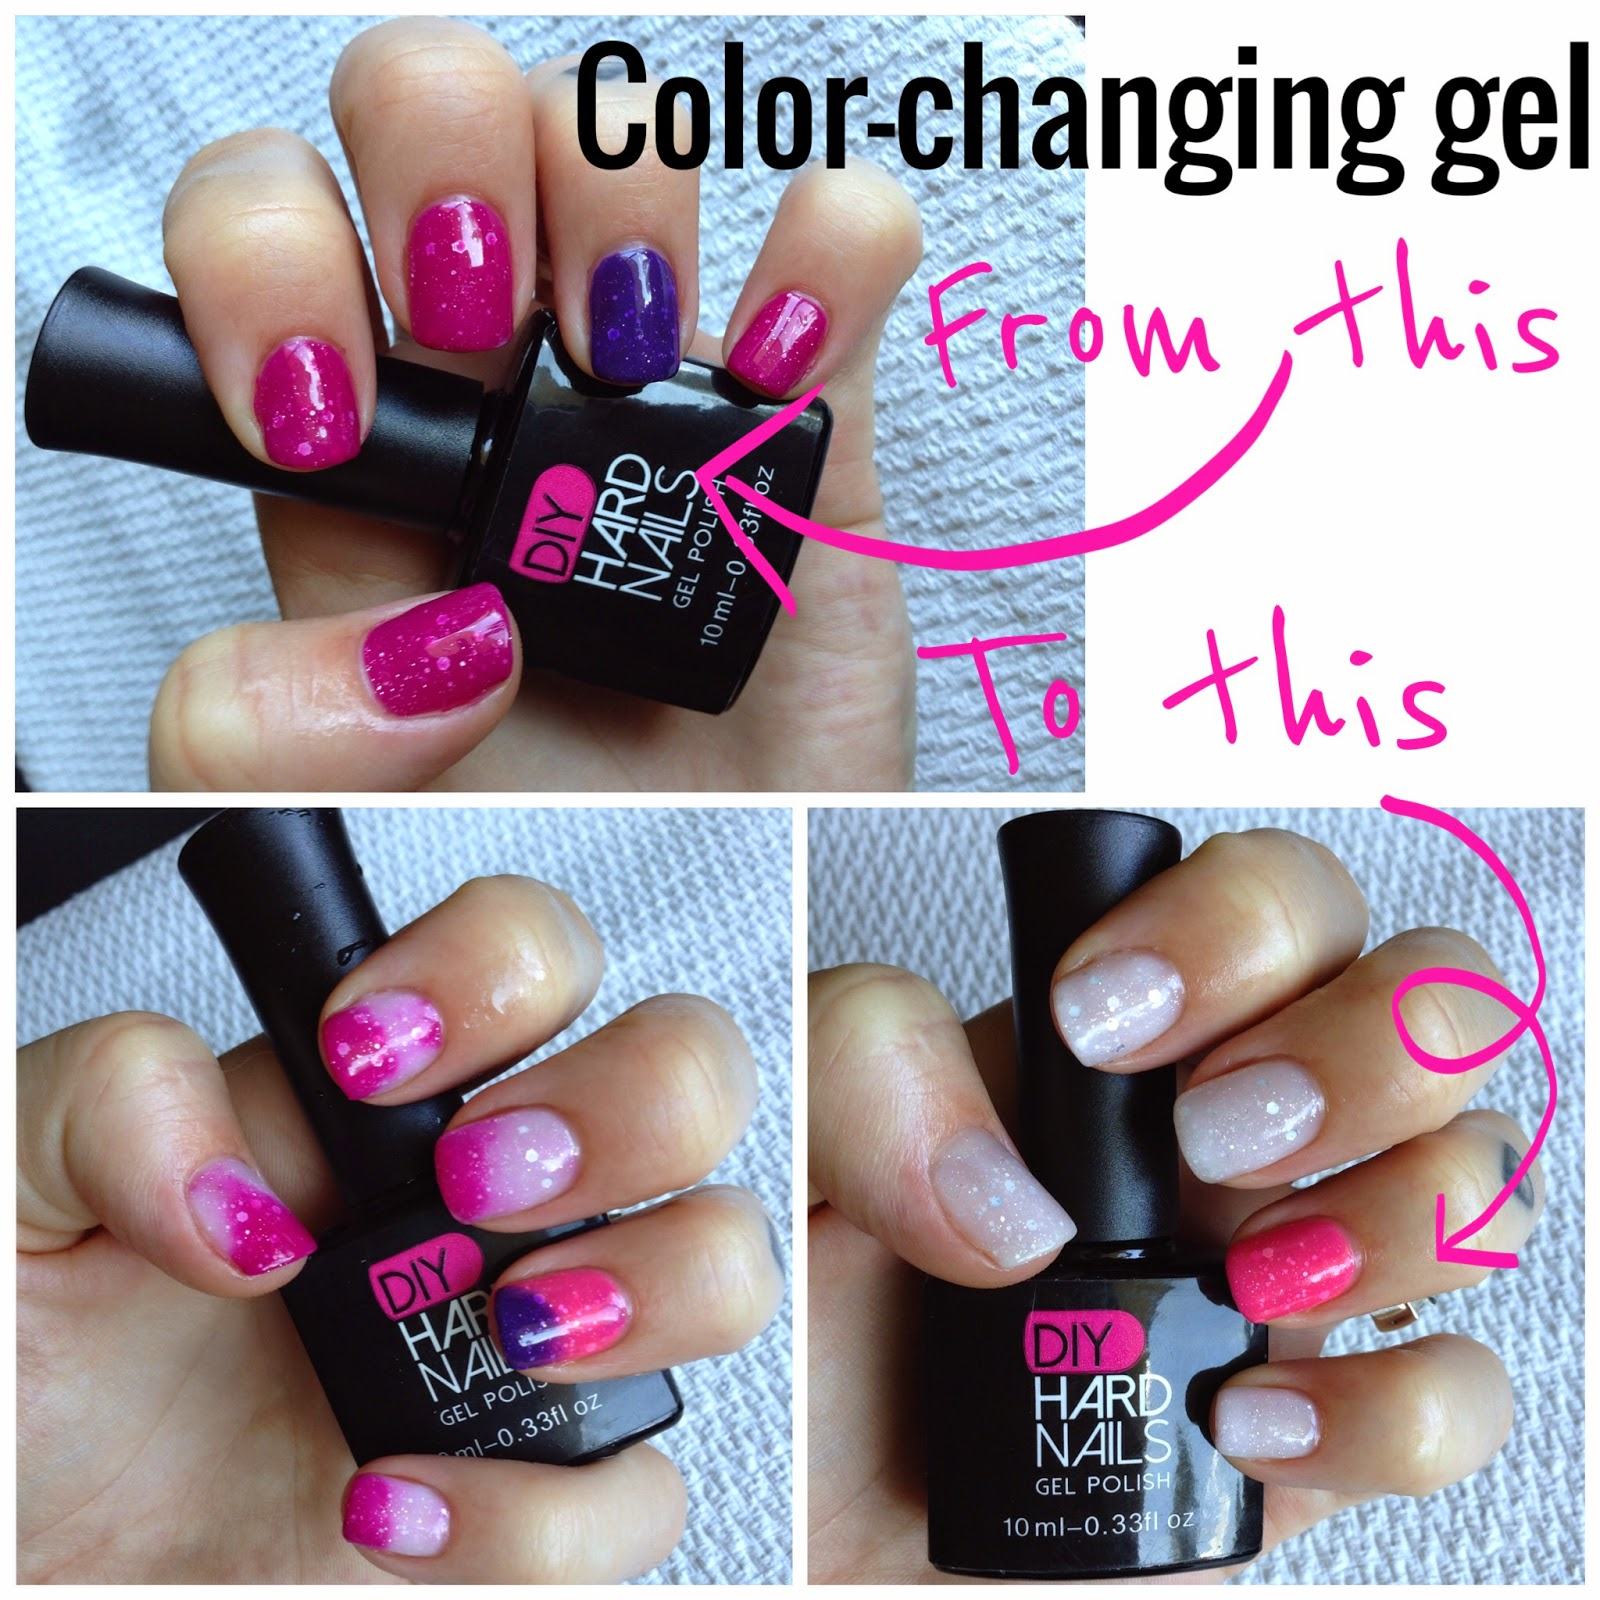 Lulu sweet pea september 2014 i was recently given the chance to try out a new line of at home gel nail polish called diy hard nails pronounced die hard nails for all of the die hard solutioingenieria Image collections